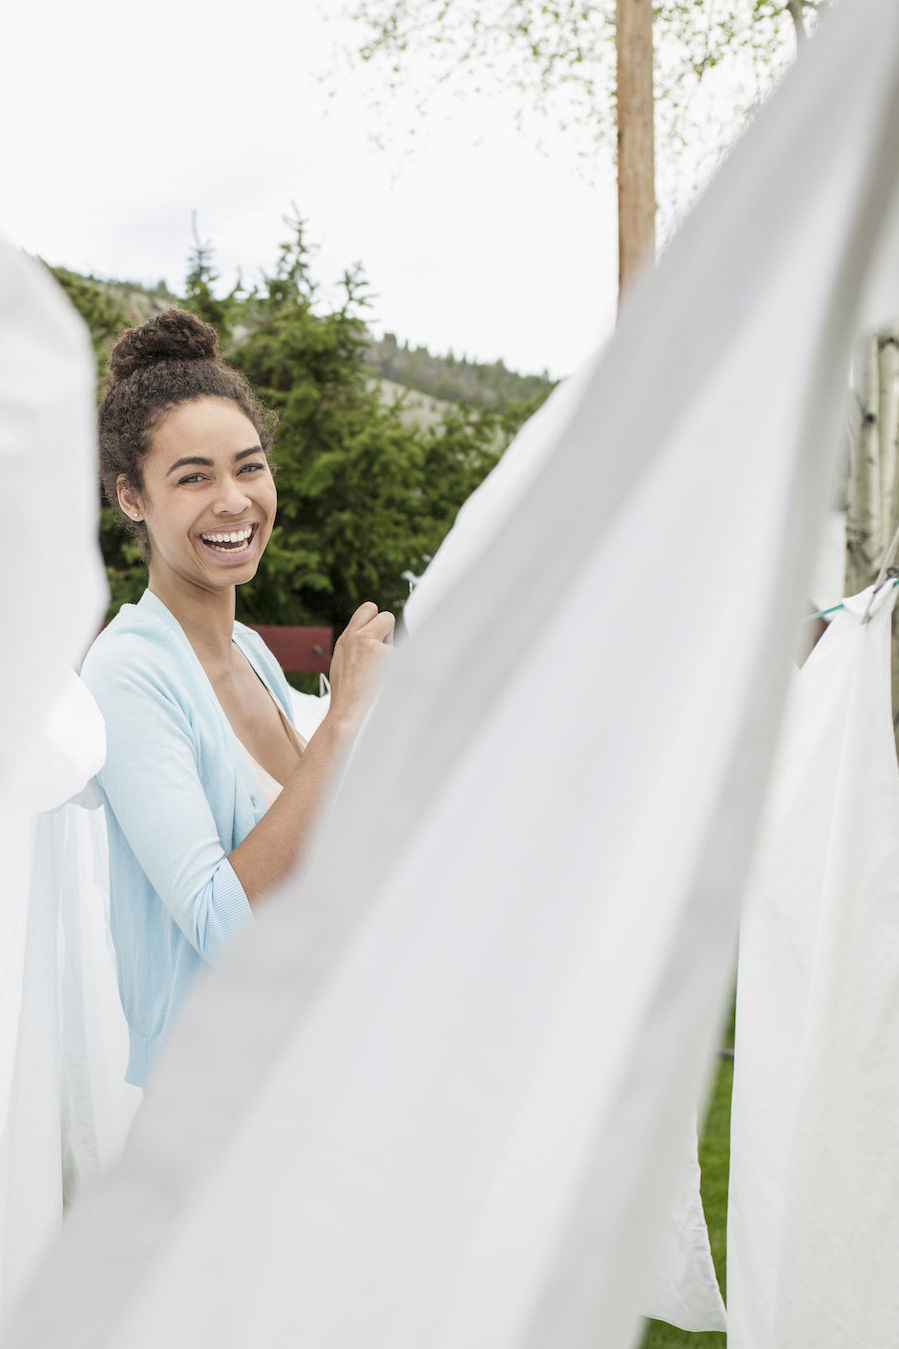 The One Mistake Europeans Think Americans Make With Their Laundry